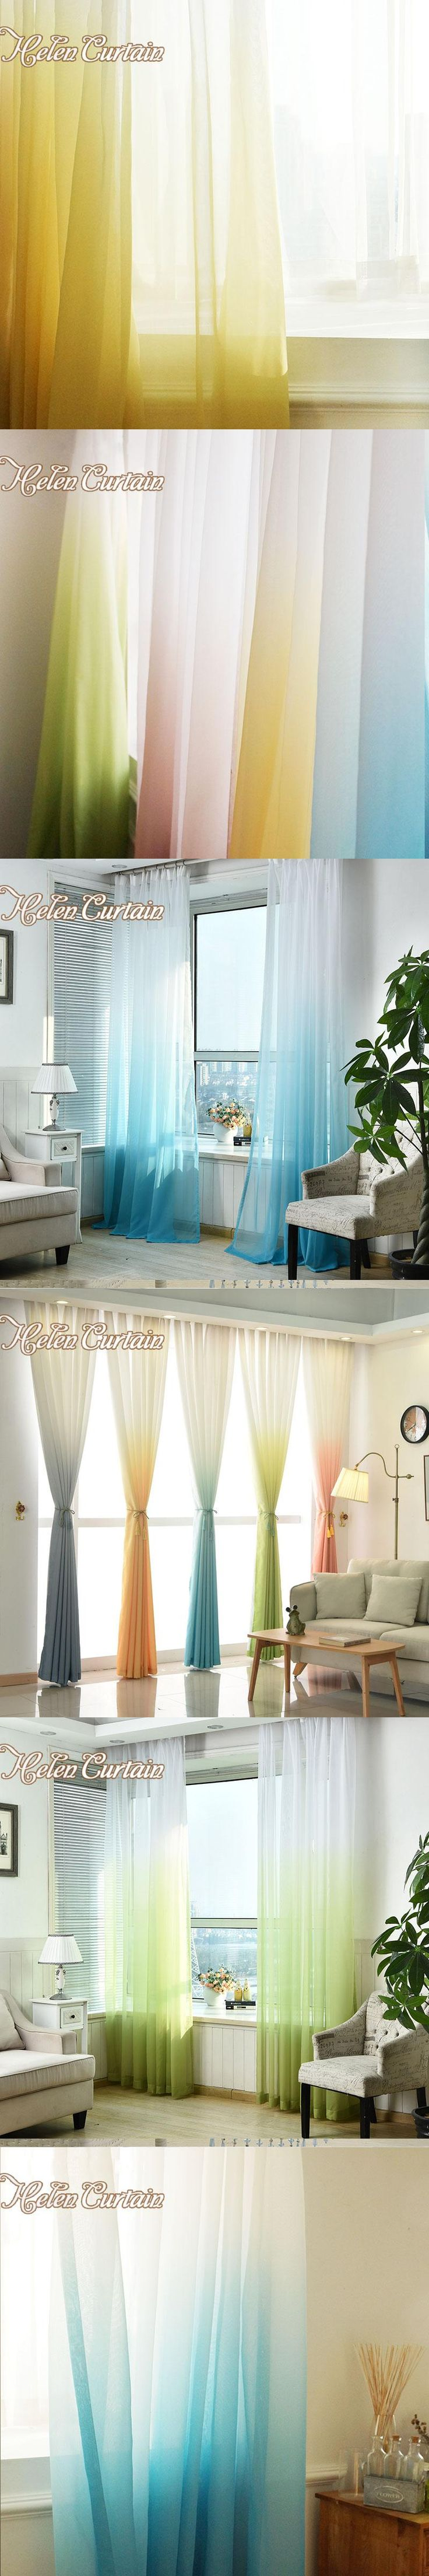 Helen Curtain Modern Gradient Solid Tulle Curtains For Living Room Blue Tulle Curtain Grommet Kitchen Curtains Window Treatment